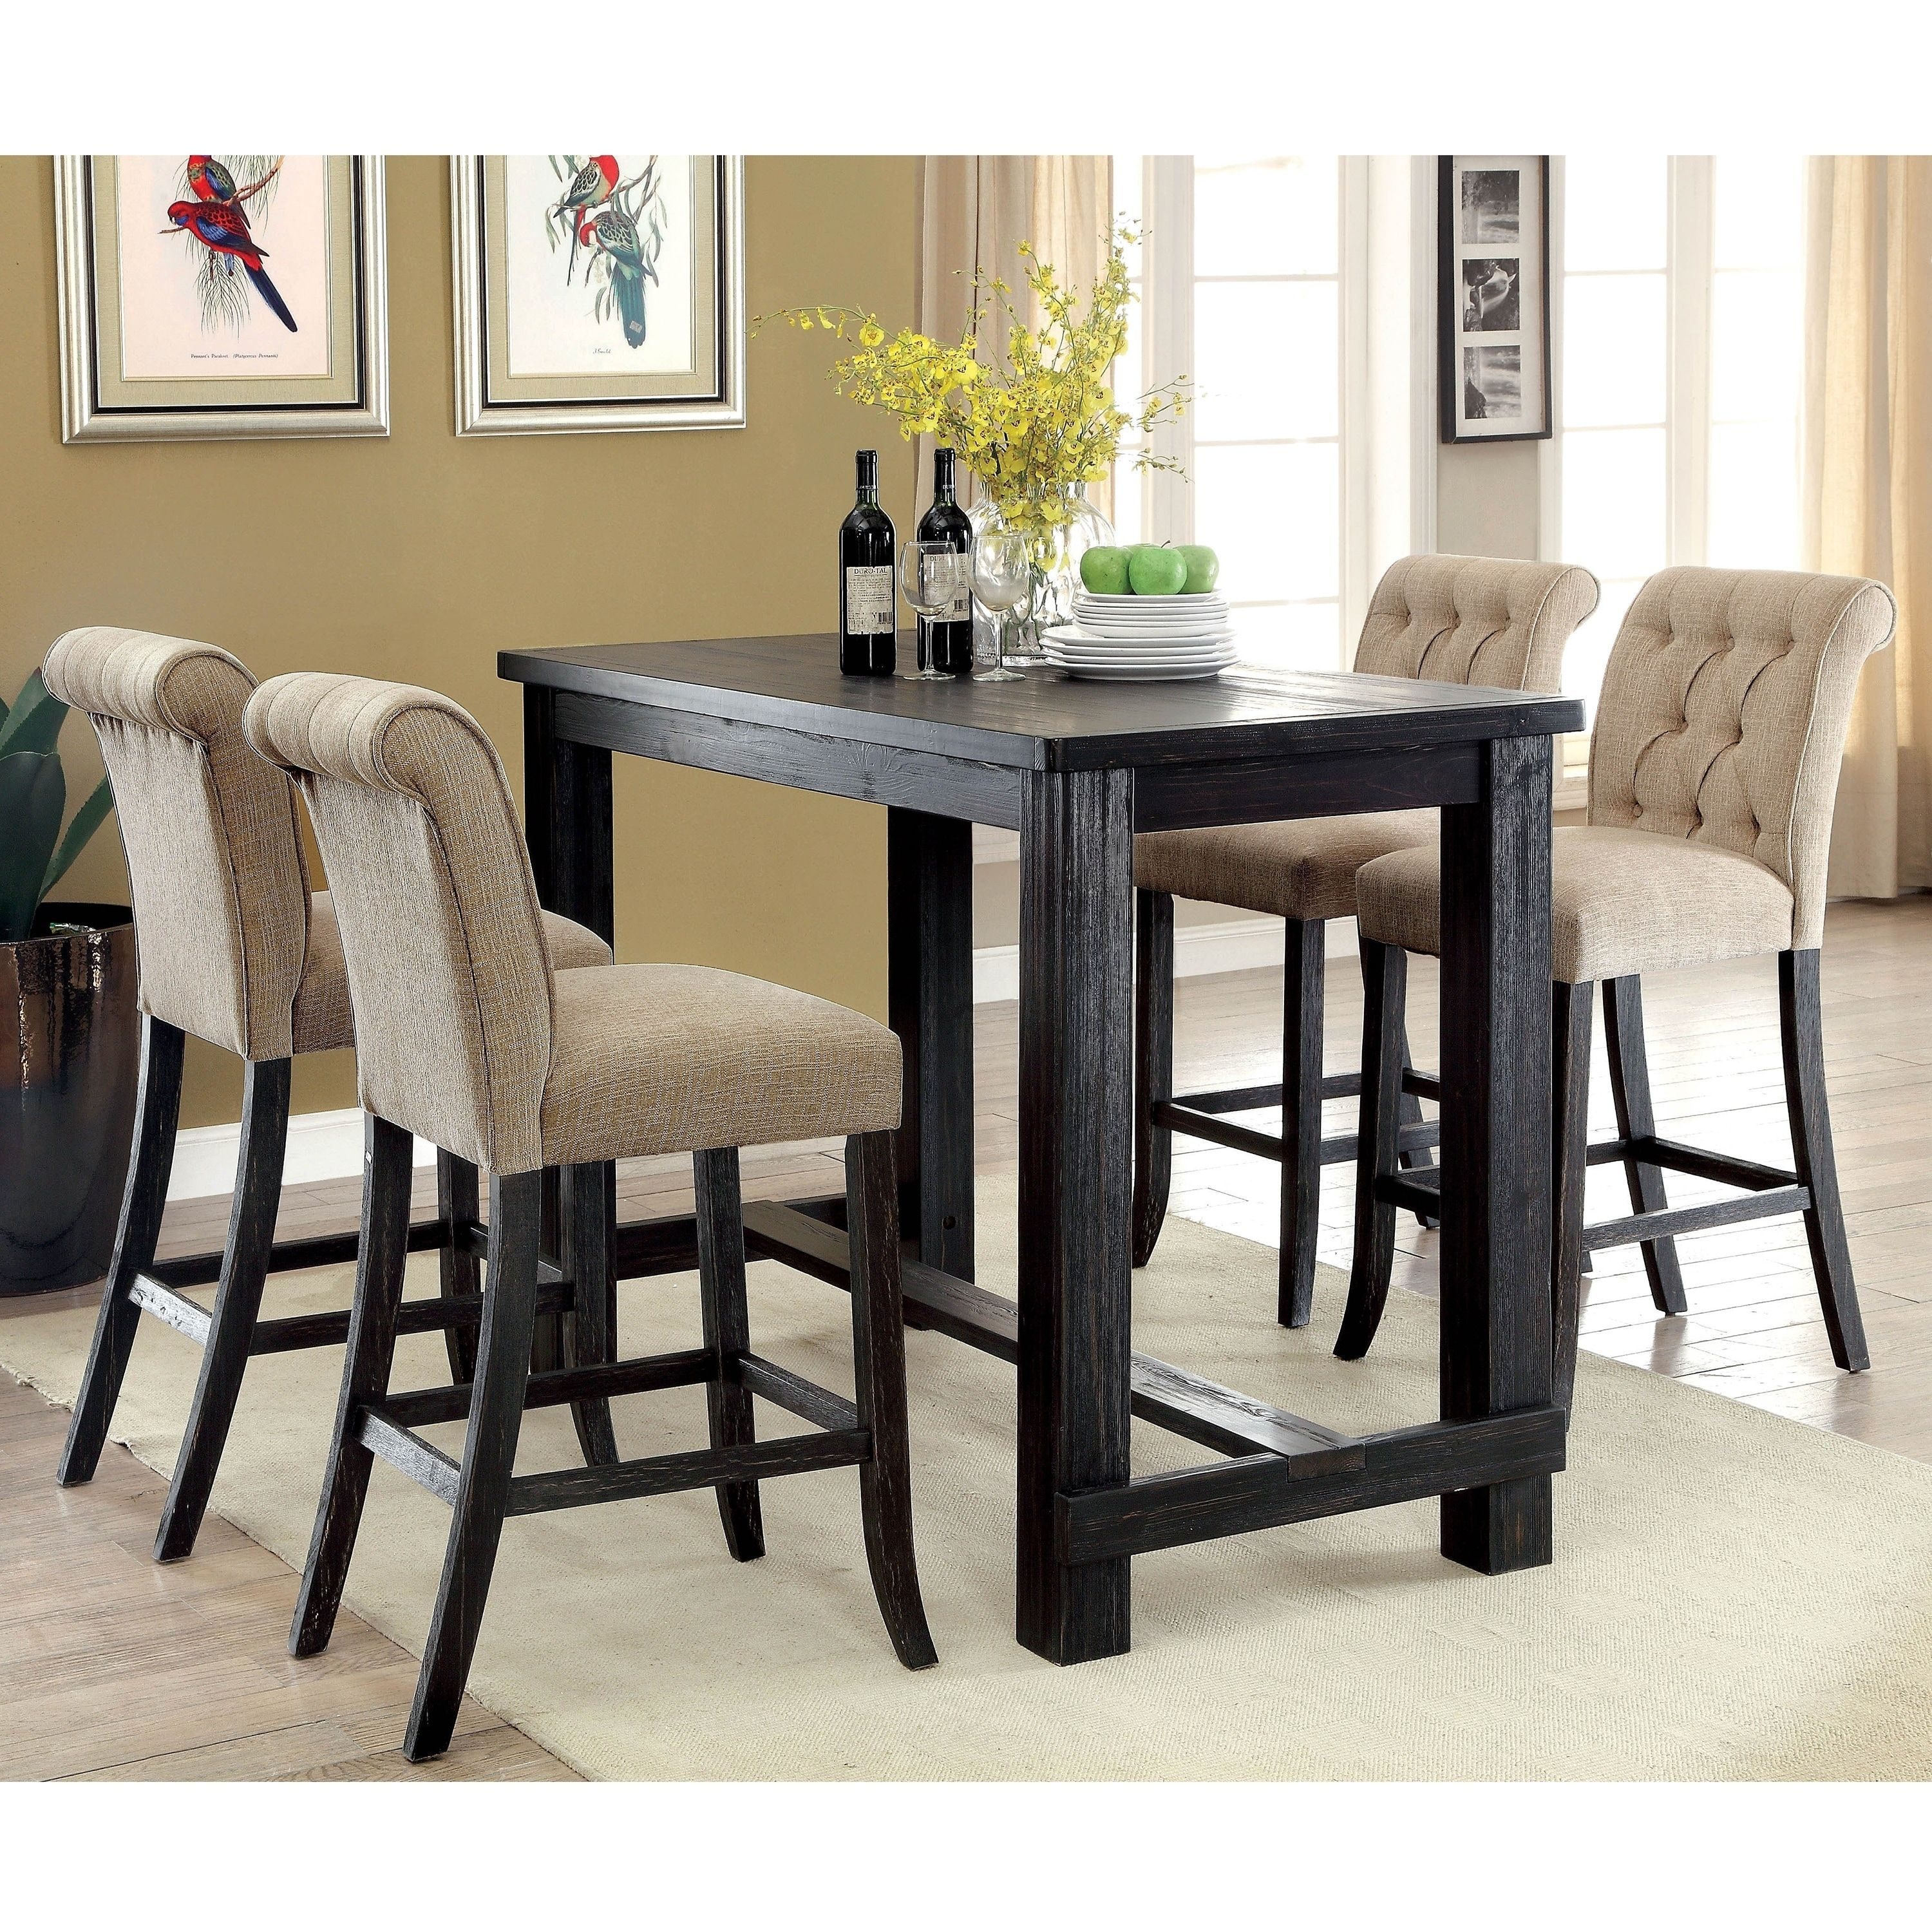 Foster Rustic Antique Black 5 Piece Bar Table Set By Foa